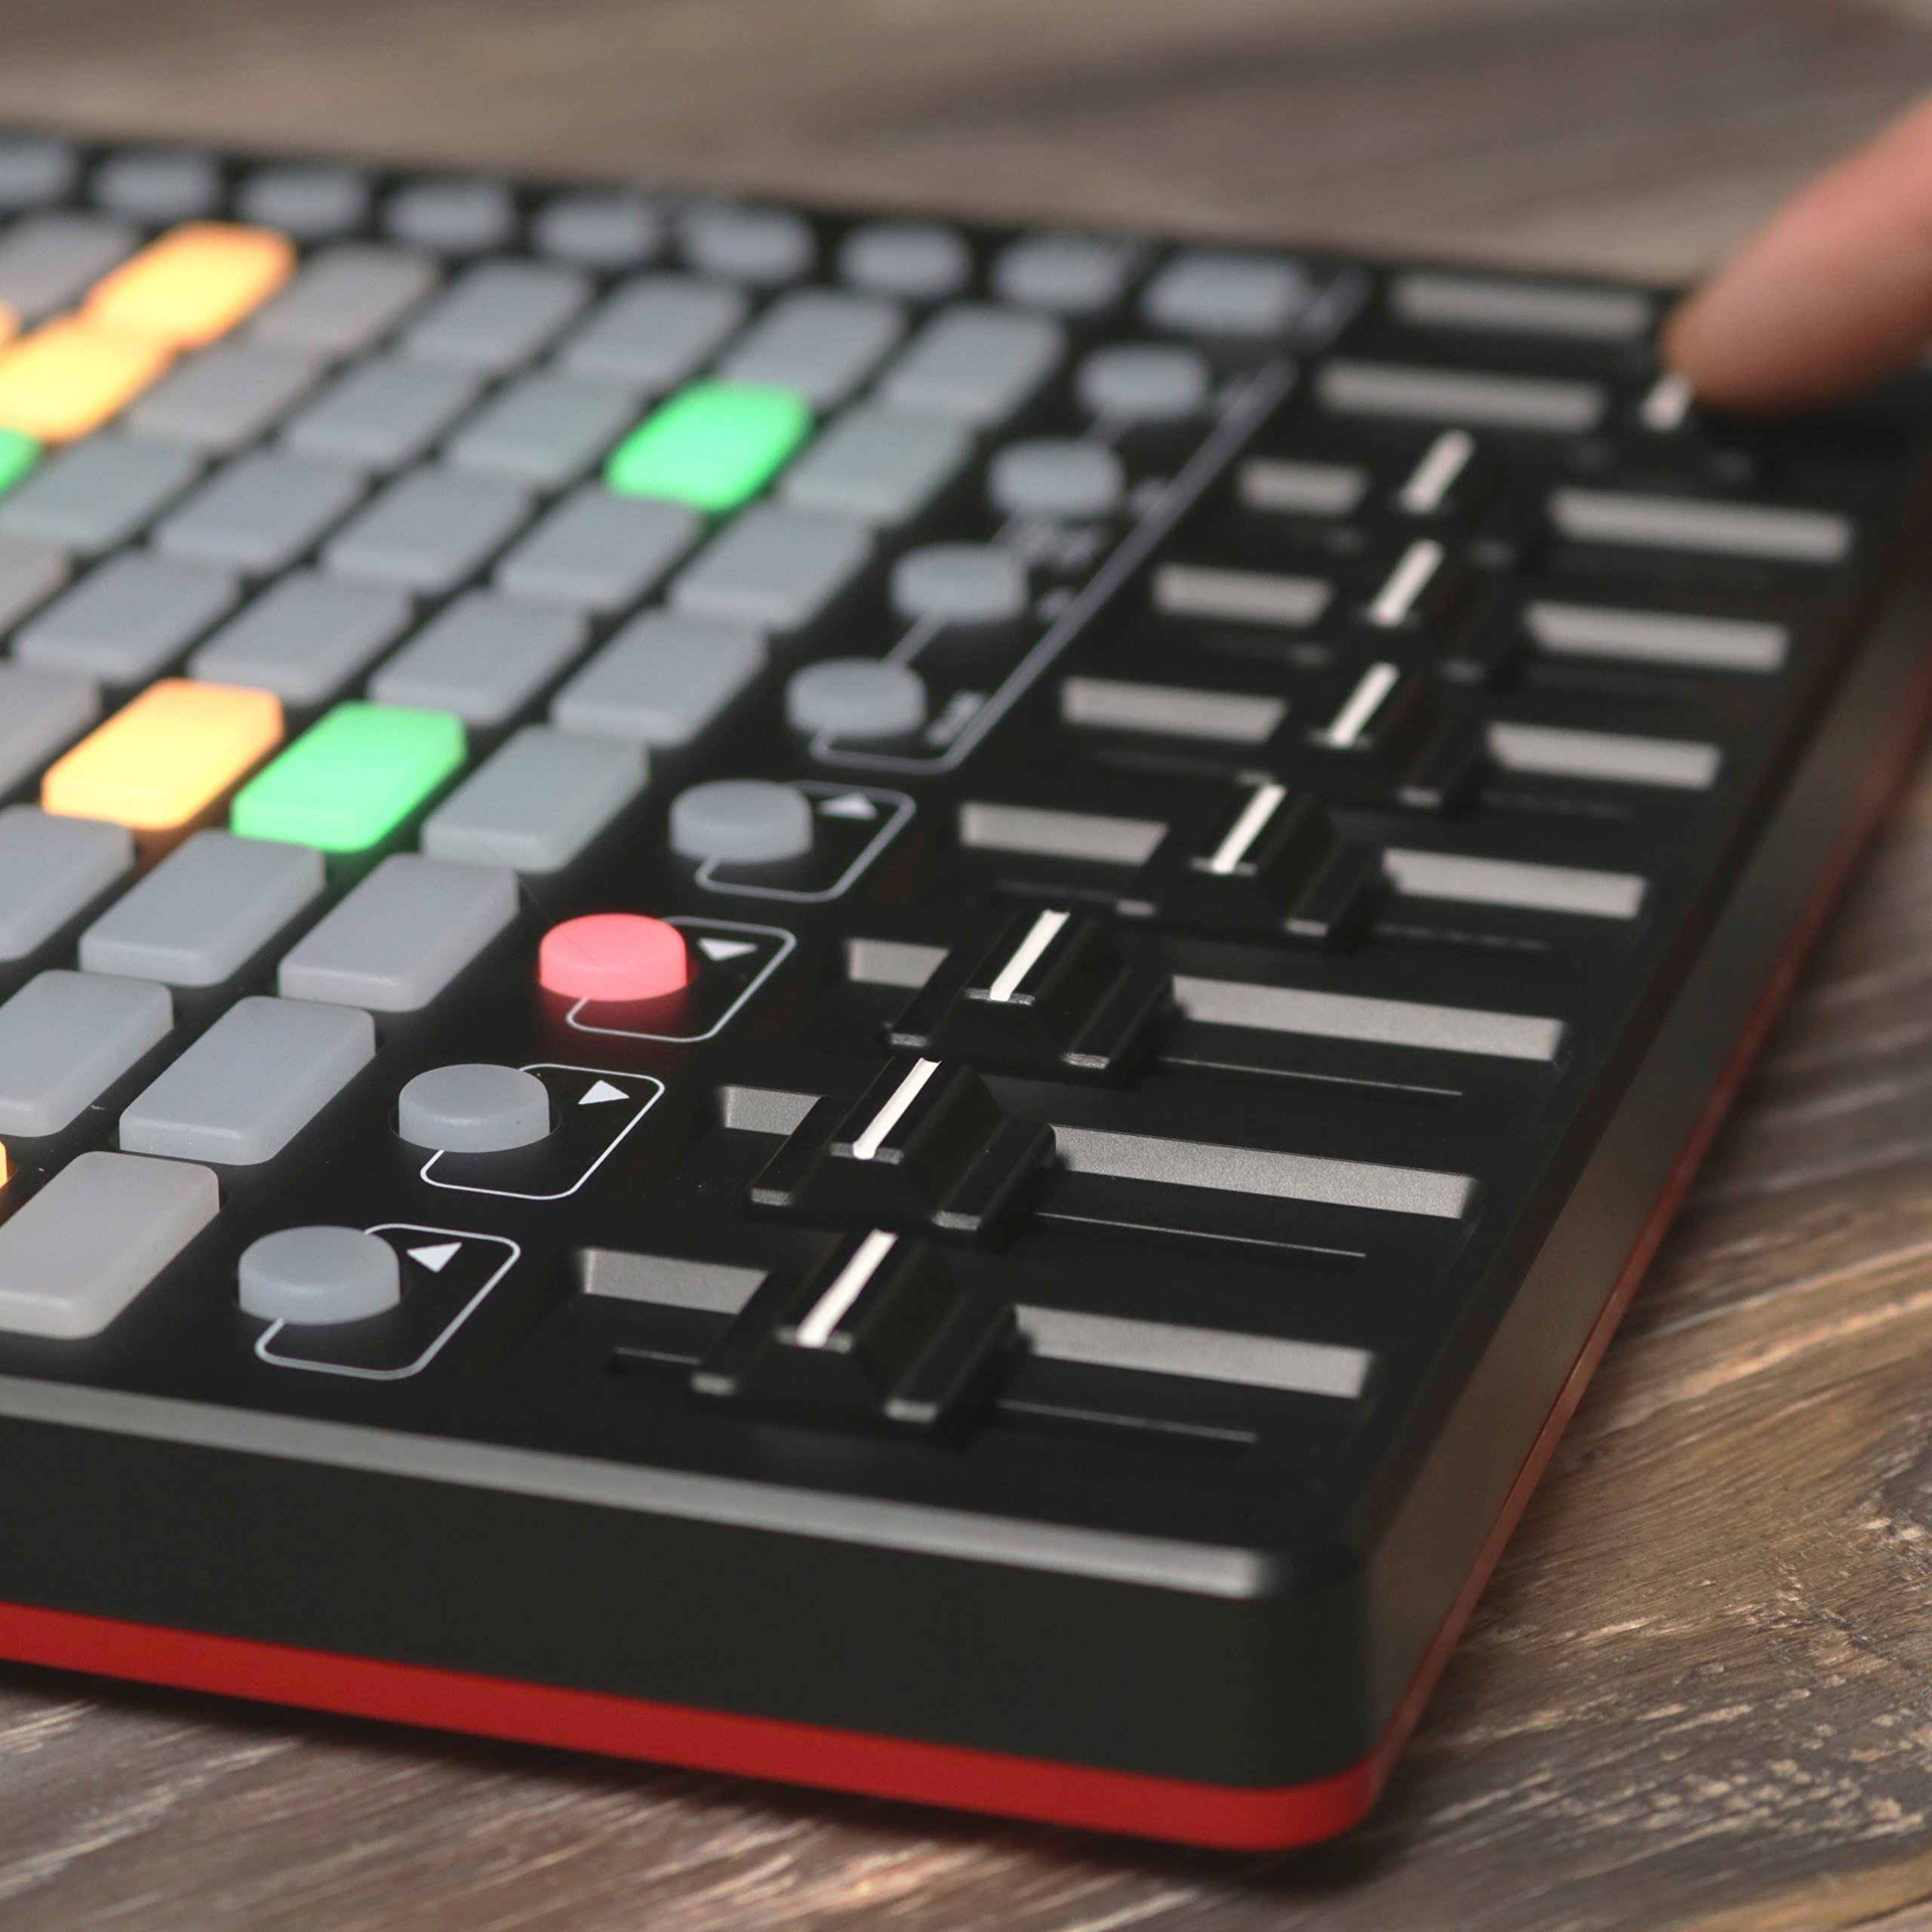 Akai Professional APC Mini | Compact Ableton Live controller with Ableton Live Lite Download (8x8 Backlit Clip-Launch Grid) by Akai (Image #6)